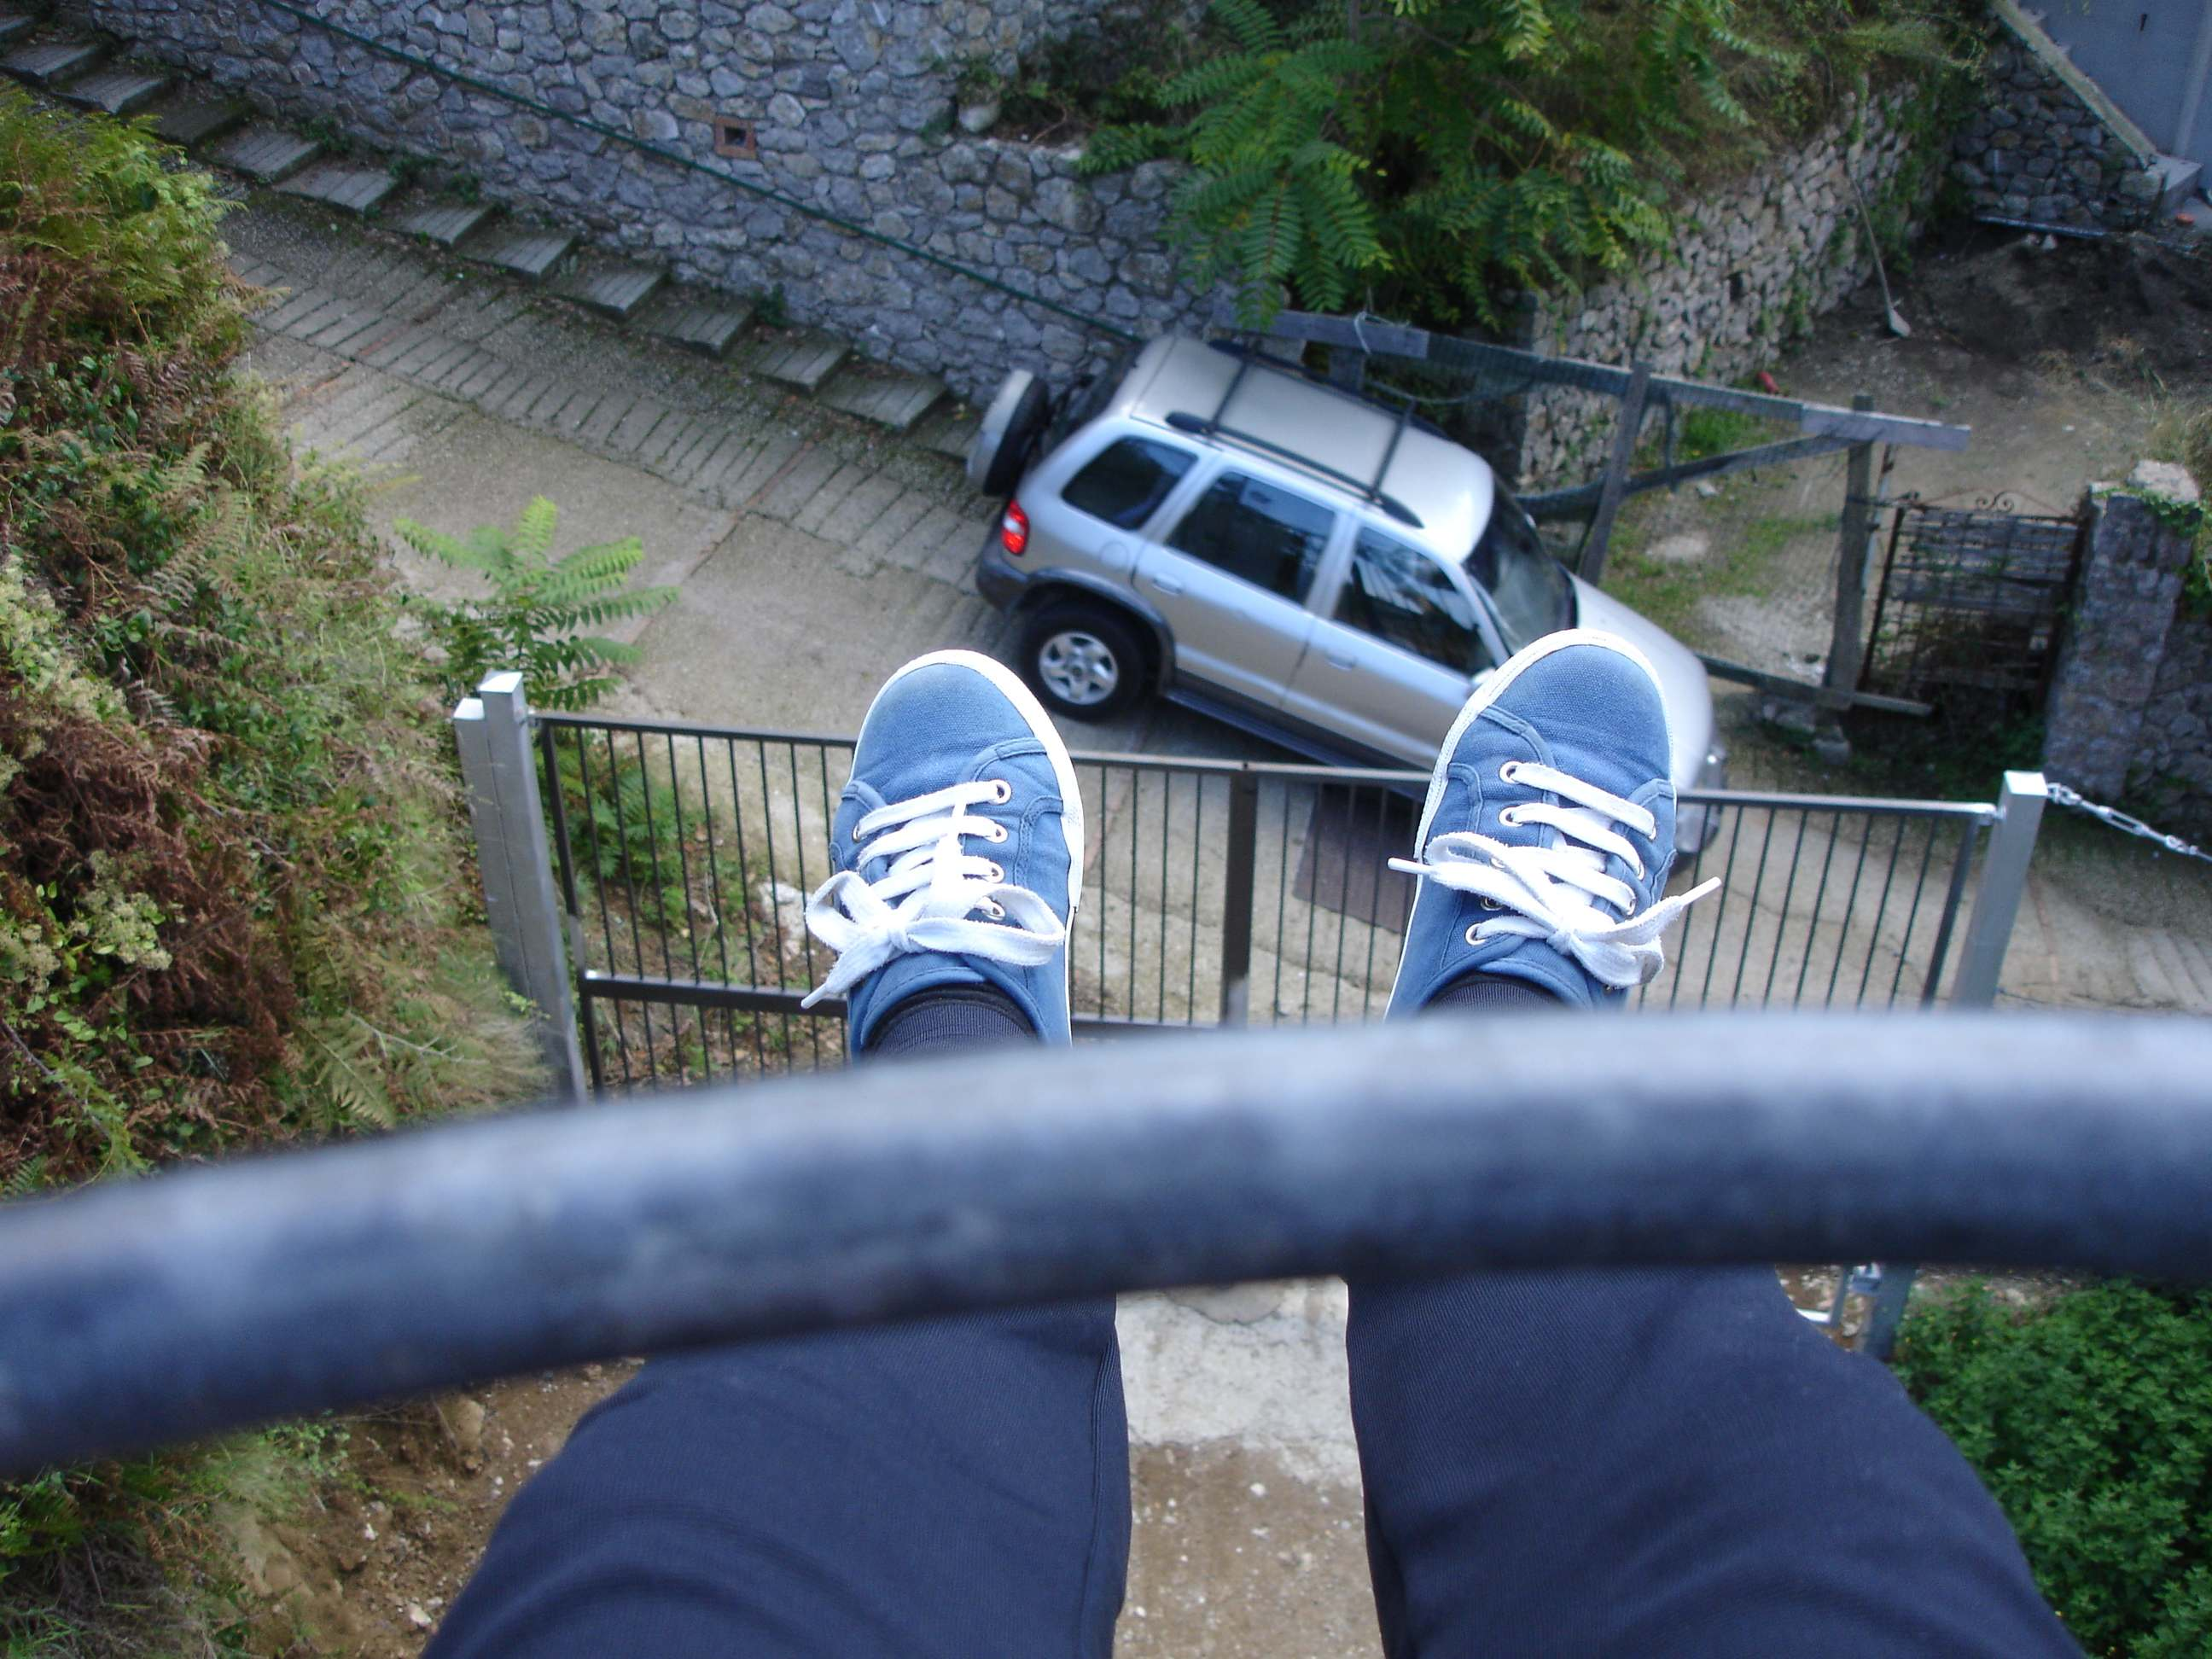 capri anacapri daggling over a road on the chairlift the lady travels